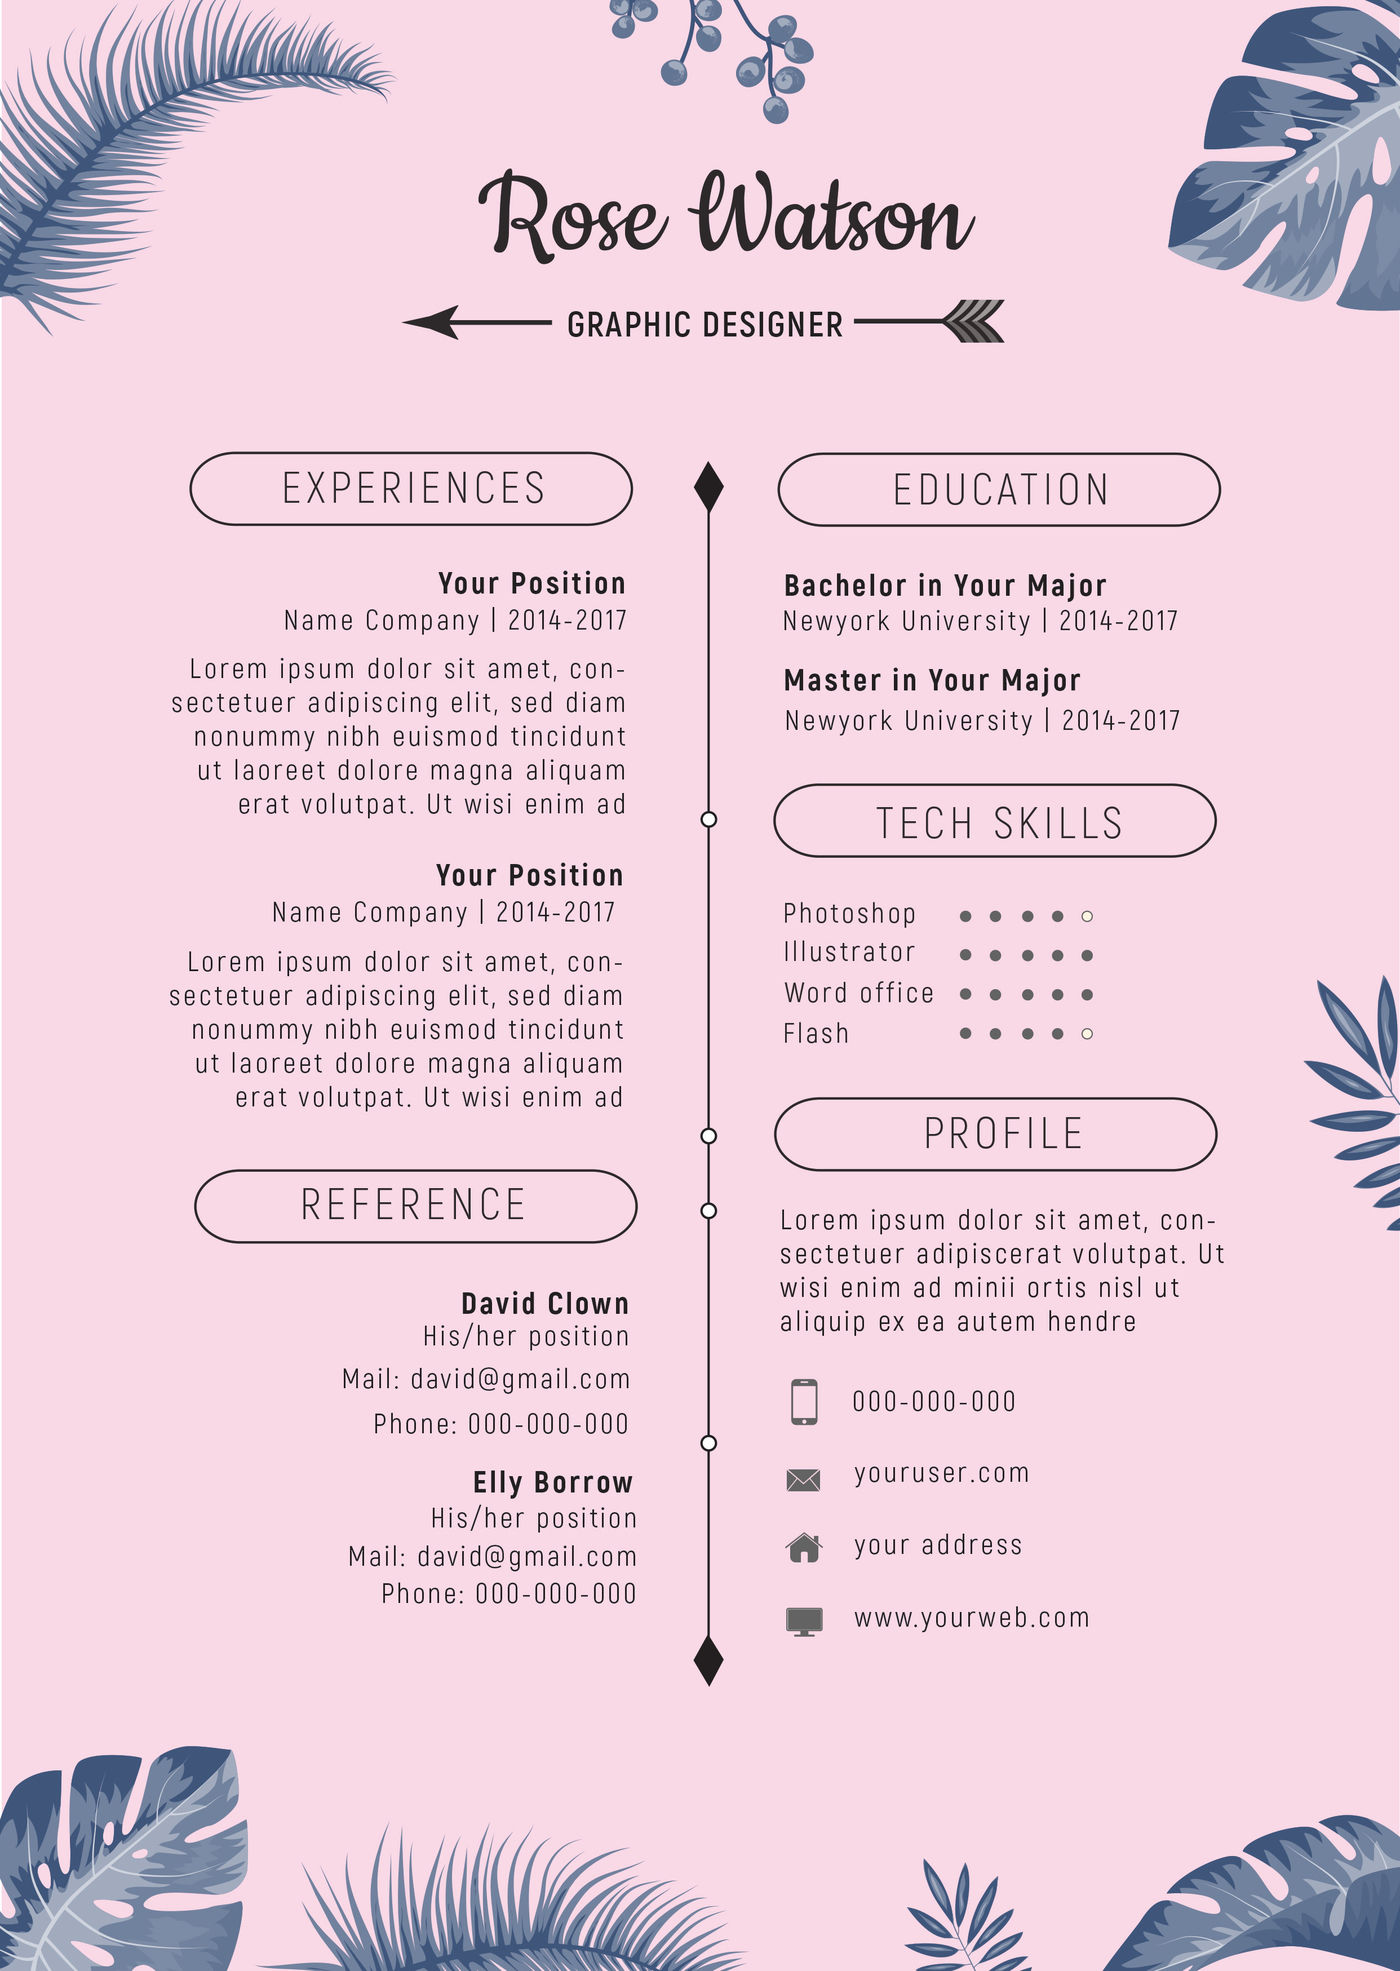 jungle blue-pink resume template   letterhead   g by